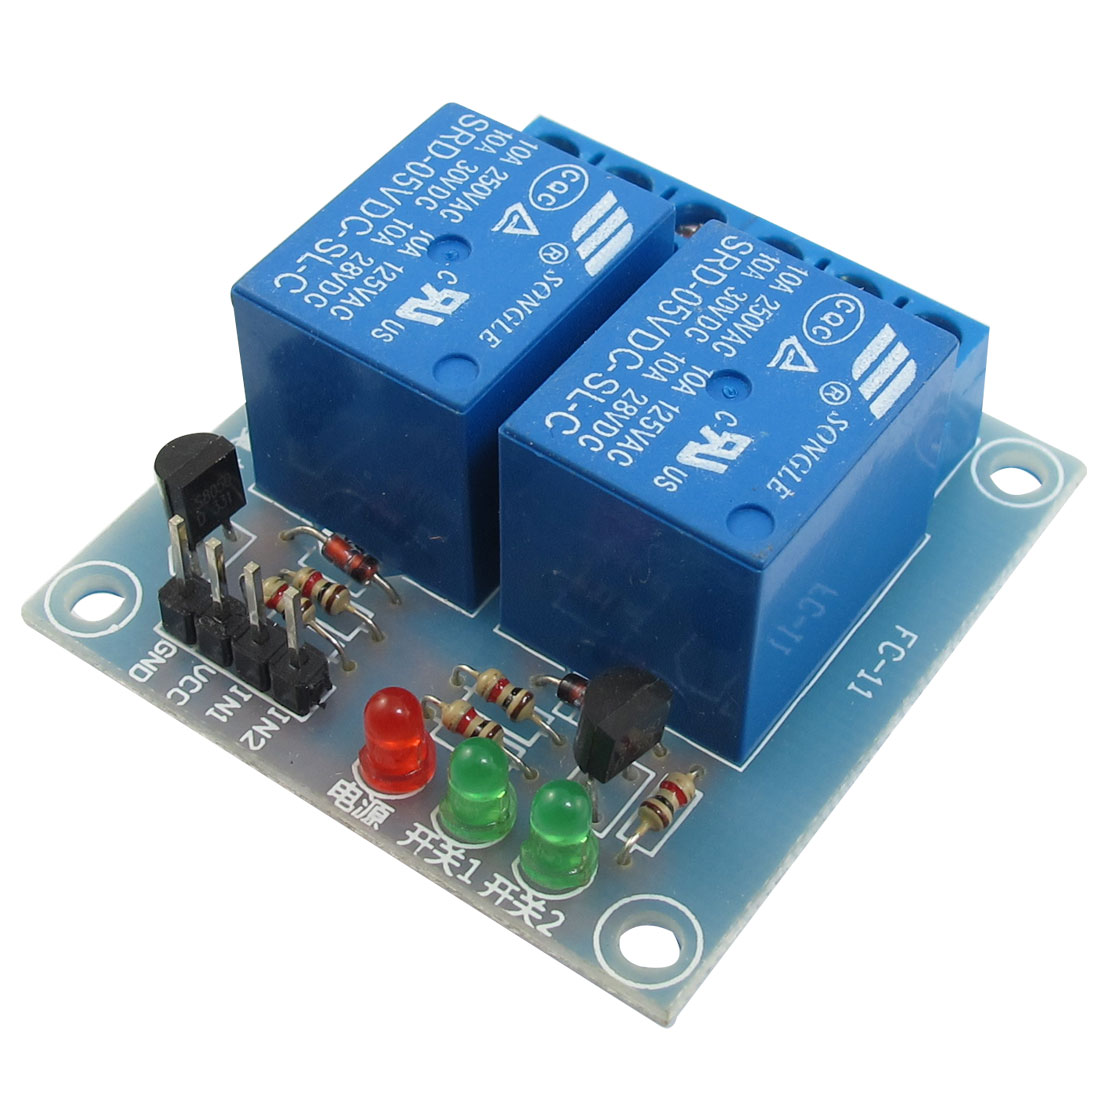 DC 5V 2-Channel High Level Trigger Relay Module for MCU AVR